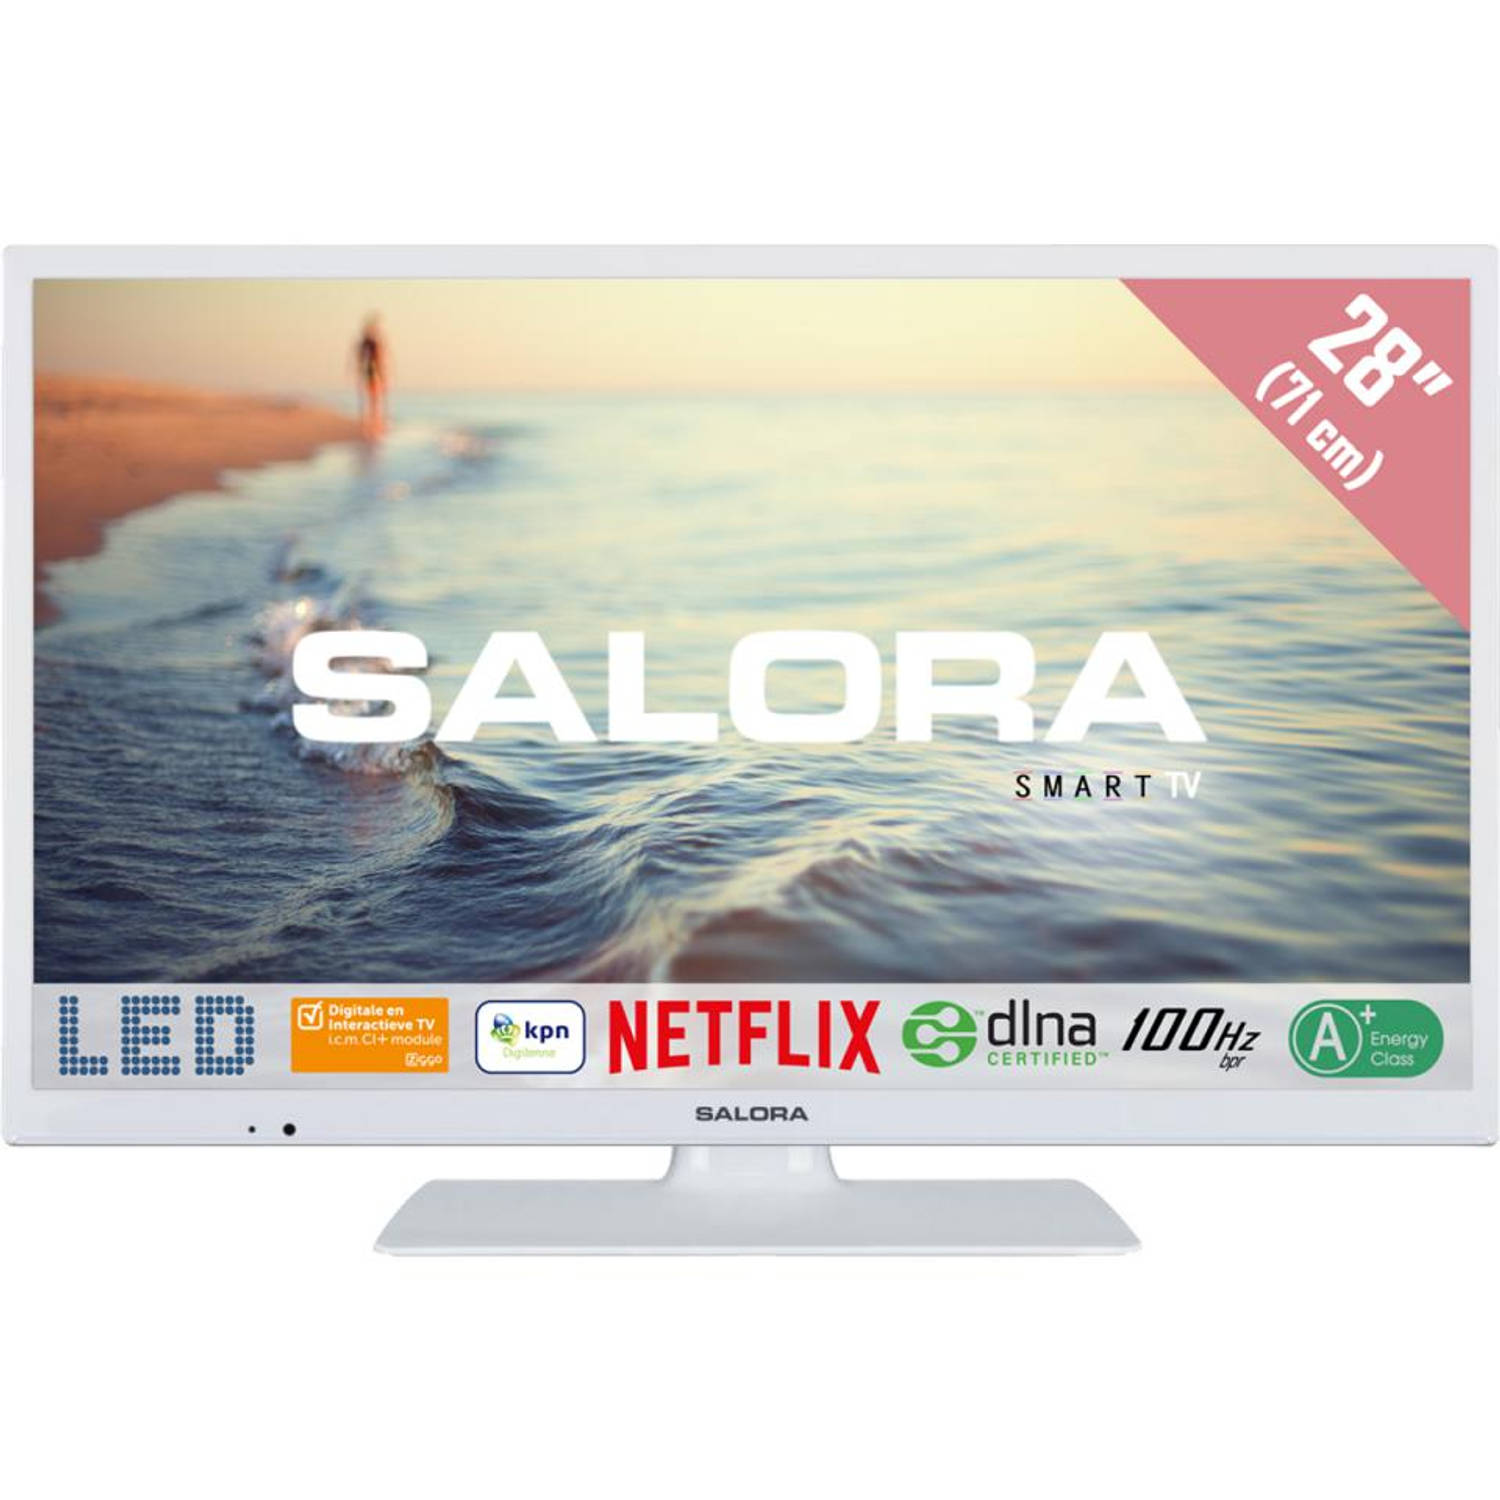 Salora Smart Led televisie 28HSW5012